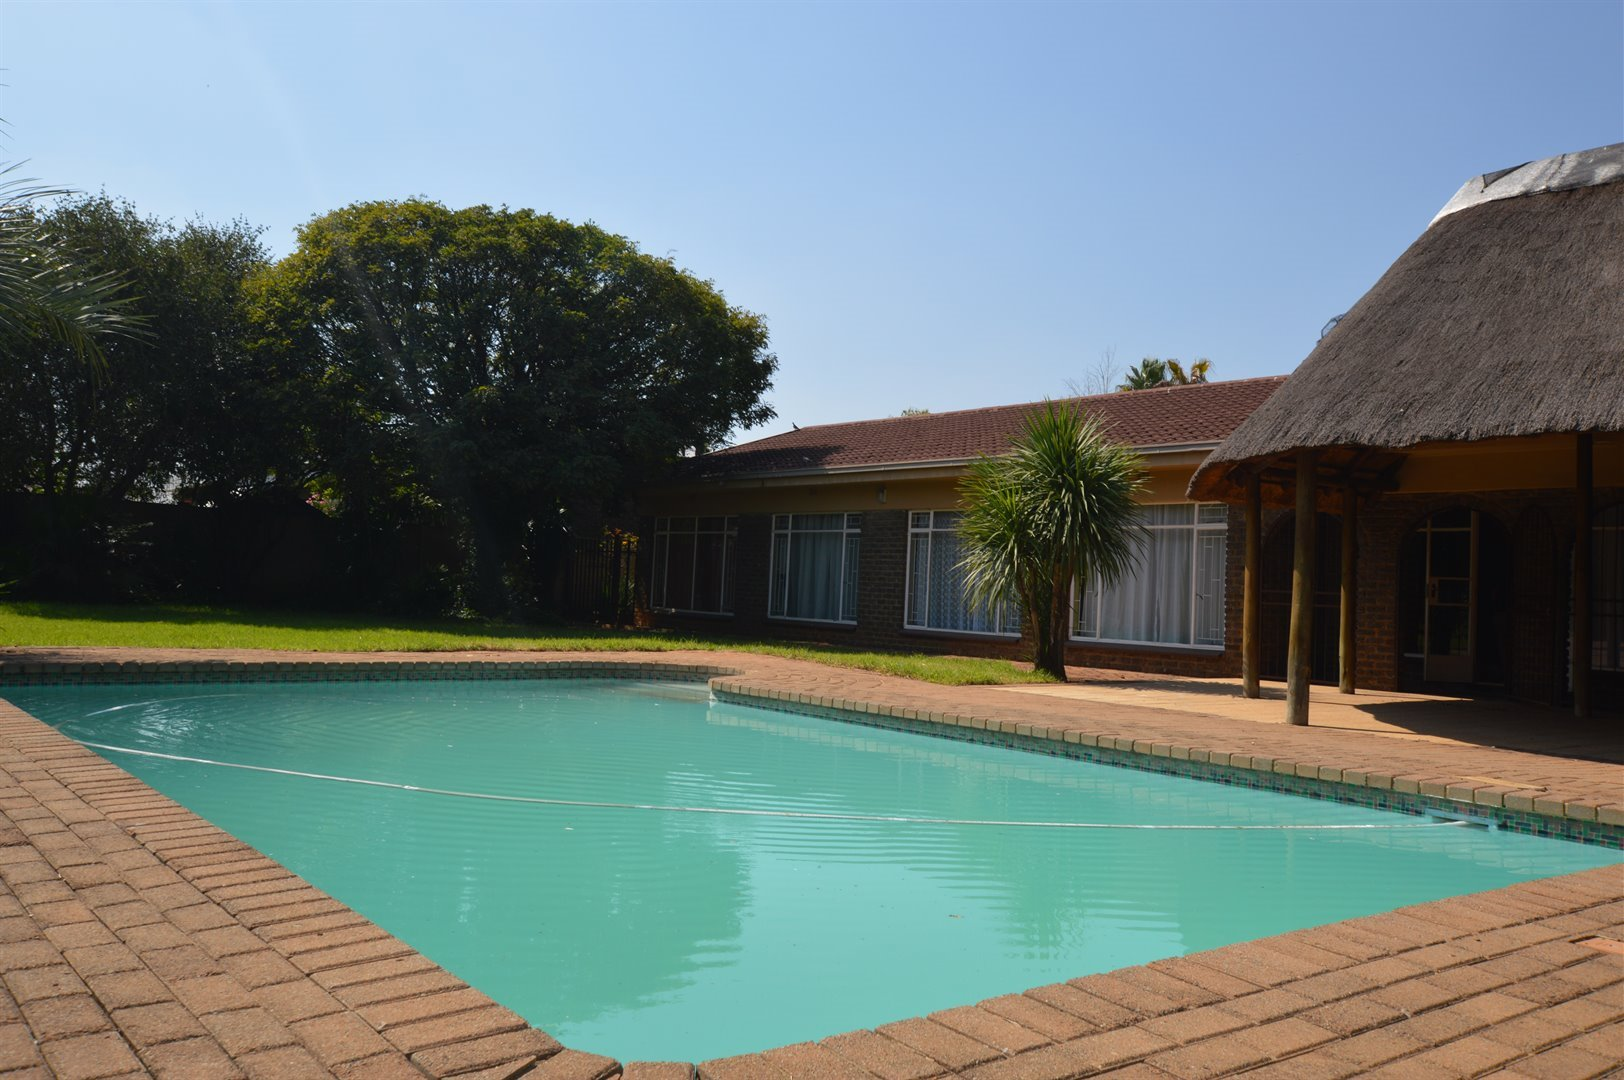 Vanderbijlpark Se 2 property for sale. Ref No: 13623209. Picture no 29